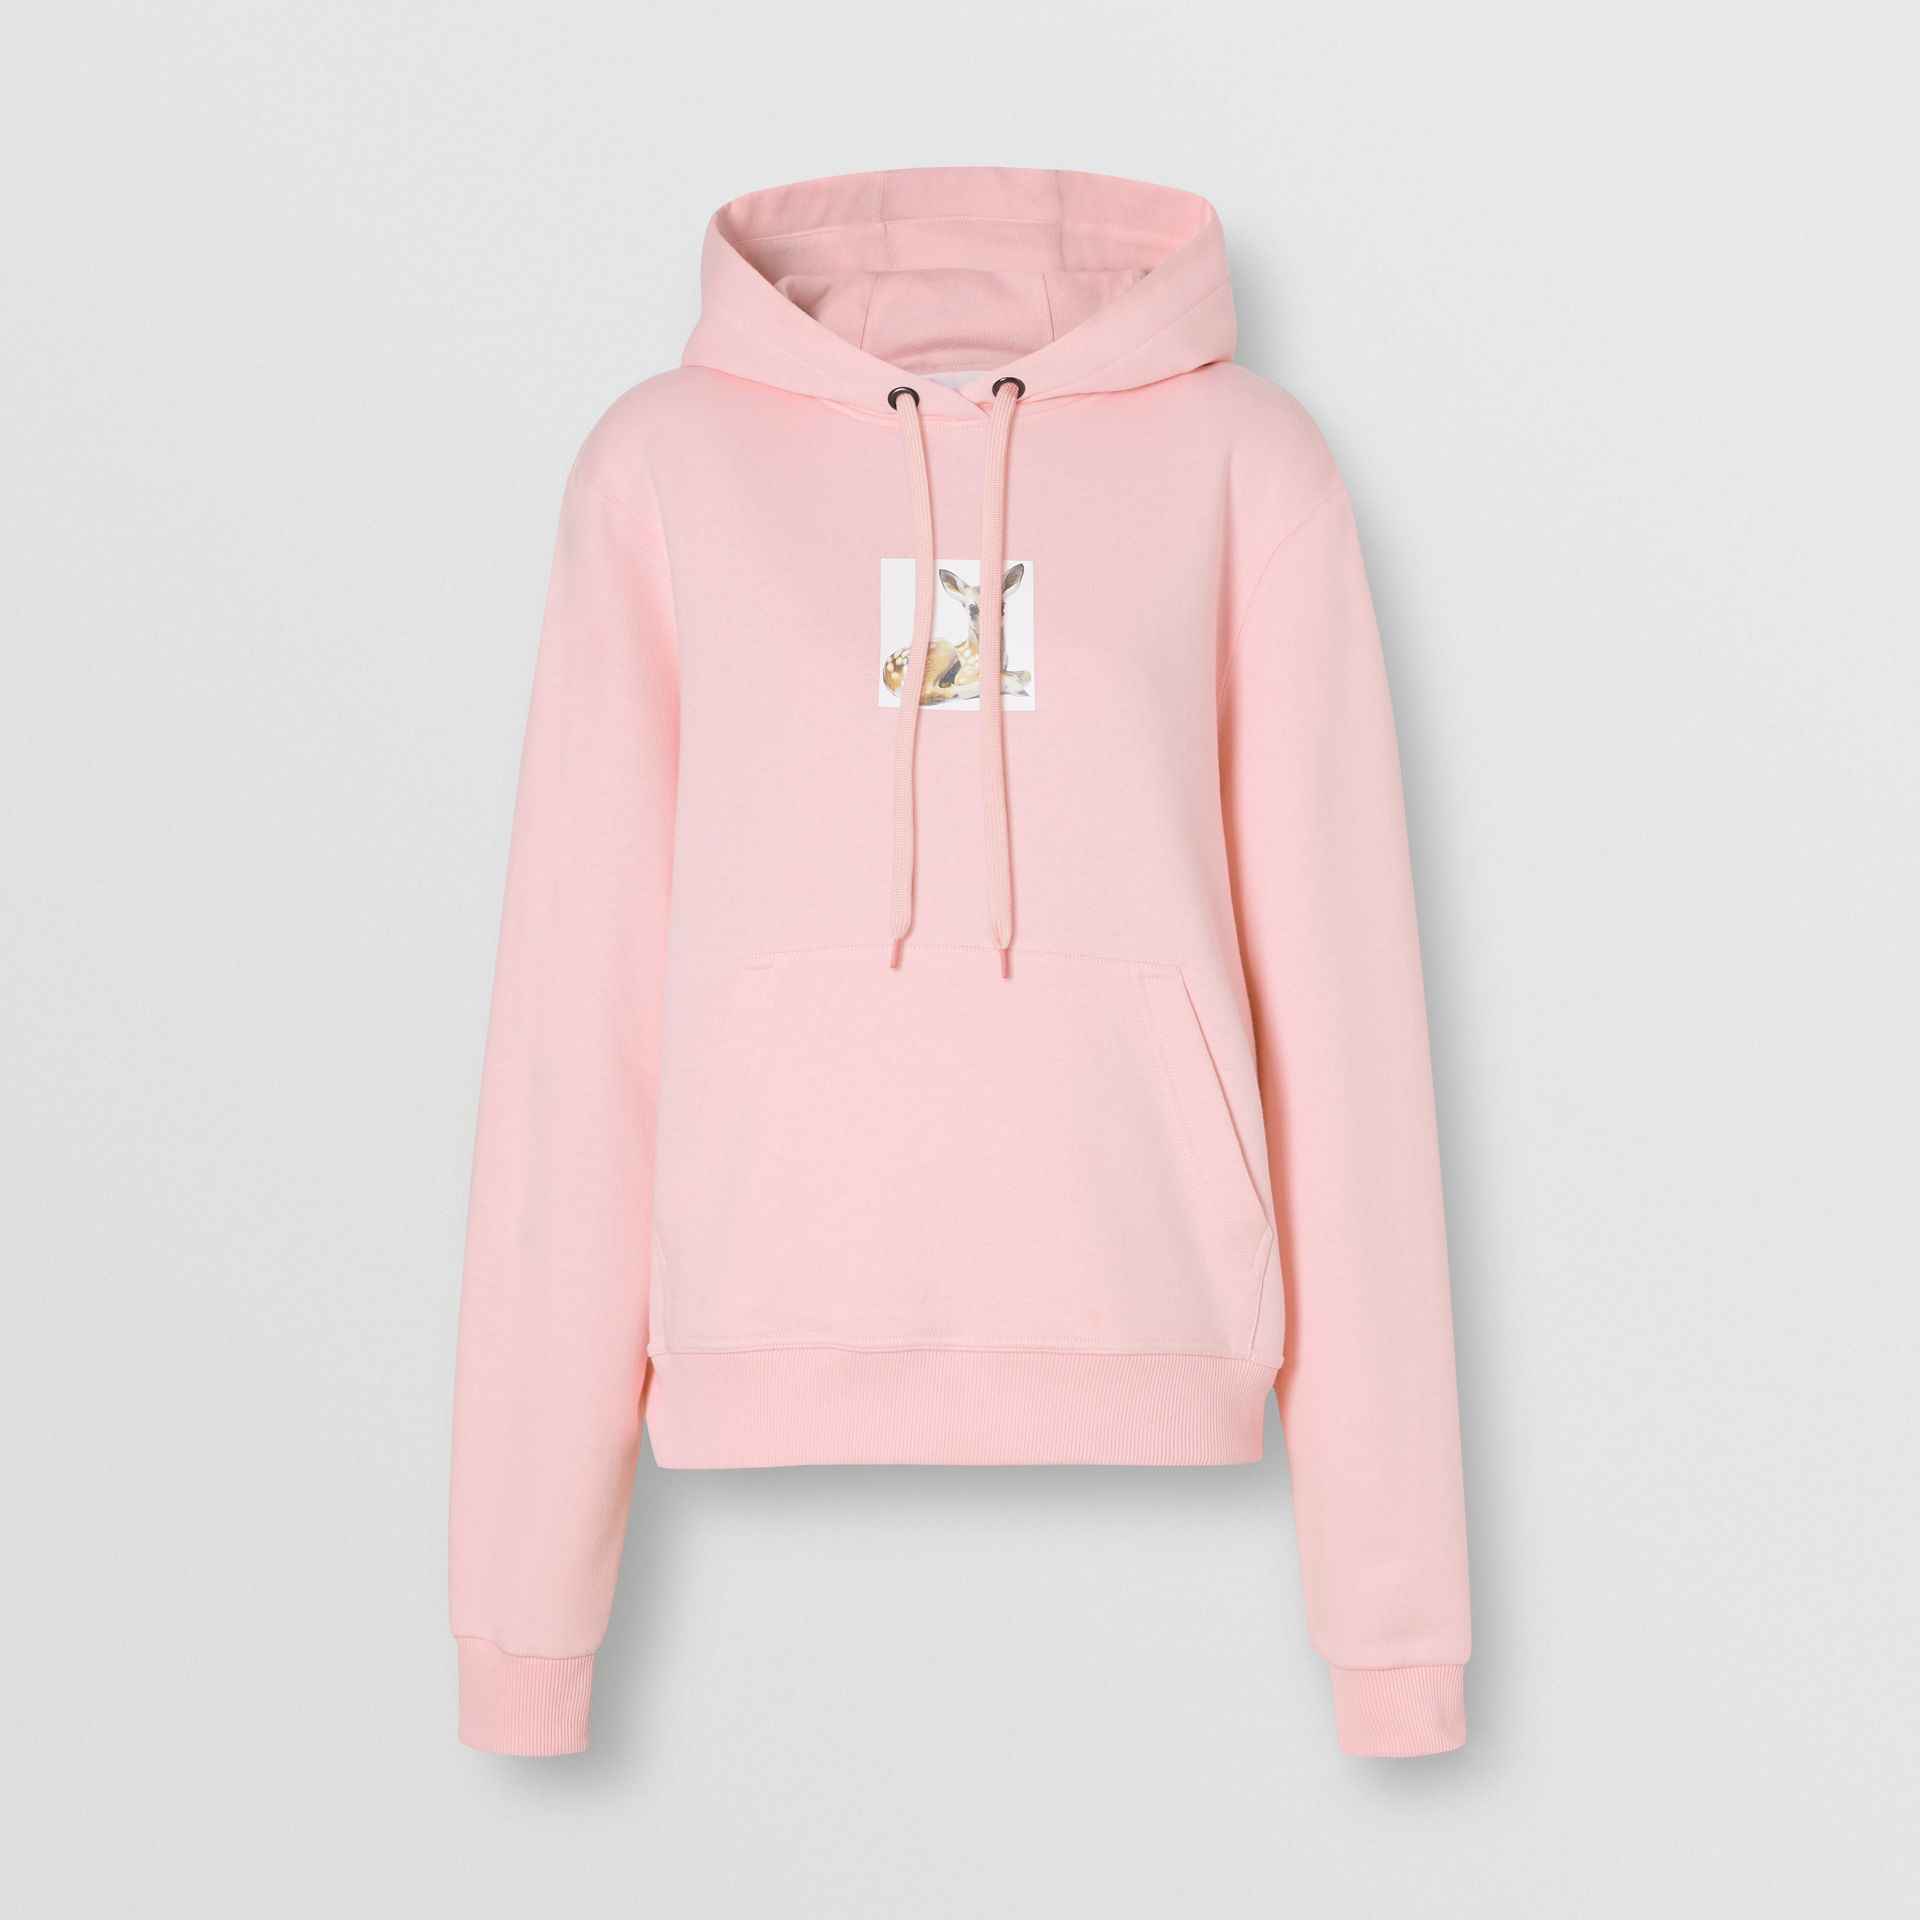 Deer Print Cotton Hoodie in Candy Pink - Women | Burberry Hong Kong S.A.R - gallery image 3